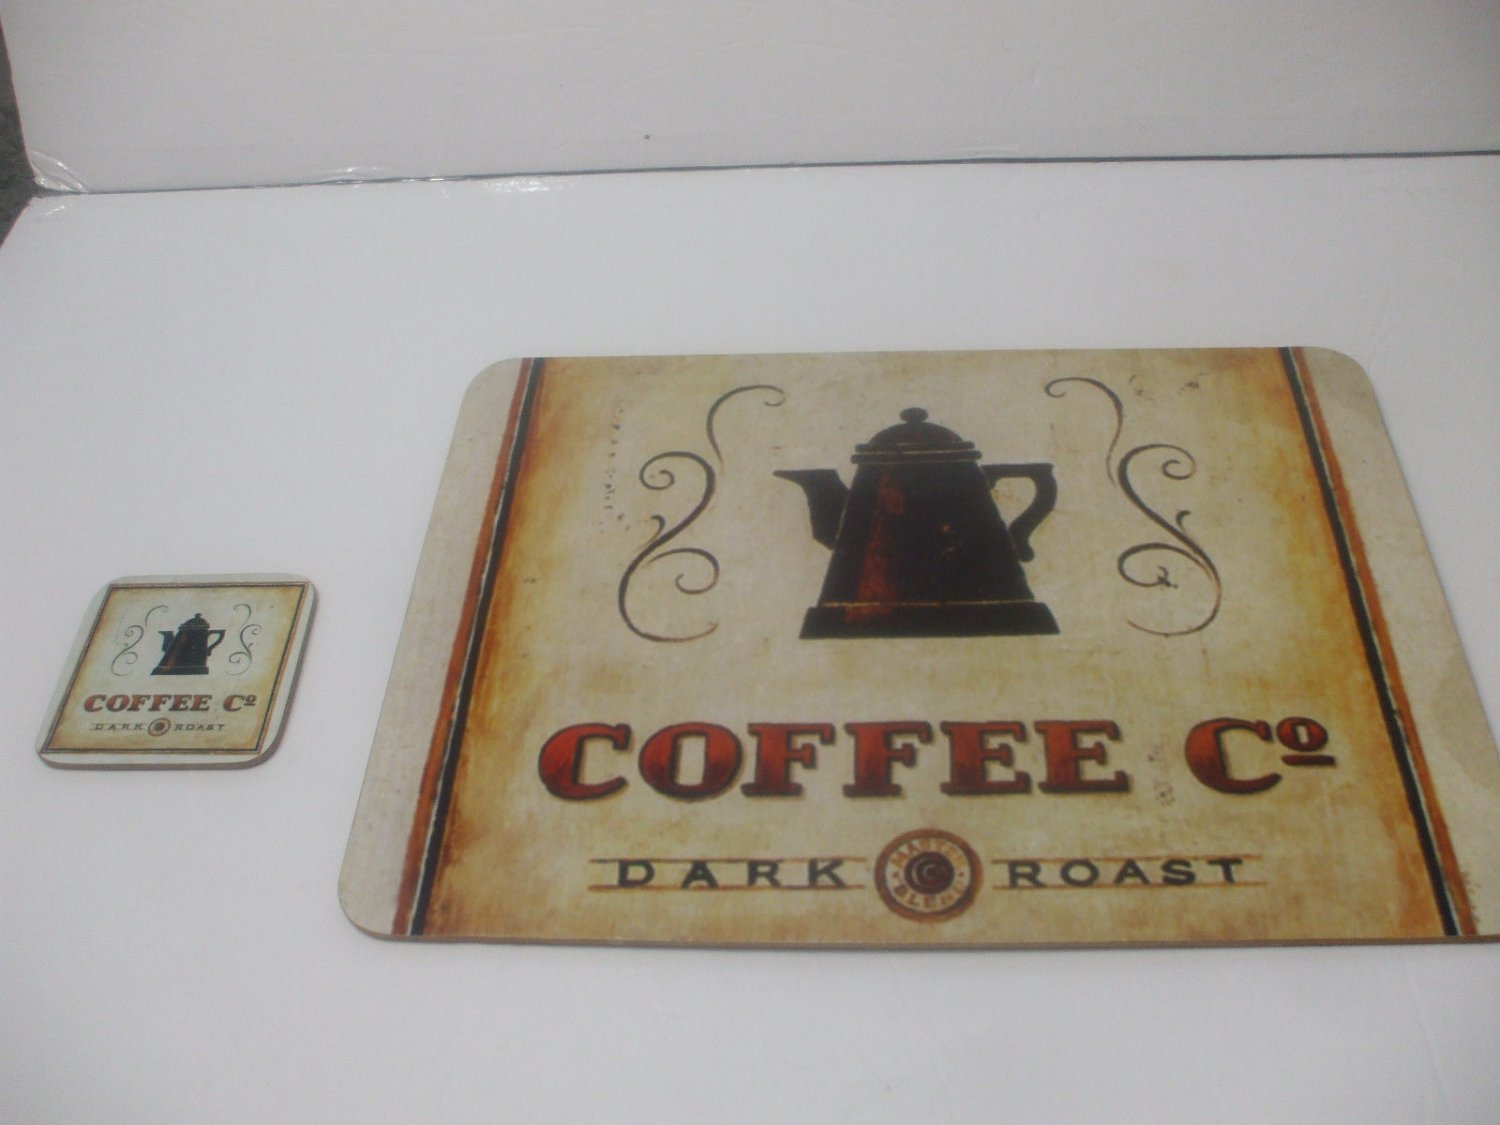 Shabby Chic Corkboard Placemat And Coaster 15 Inches X 13 Inches Coffee Co Dark Roast